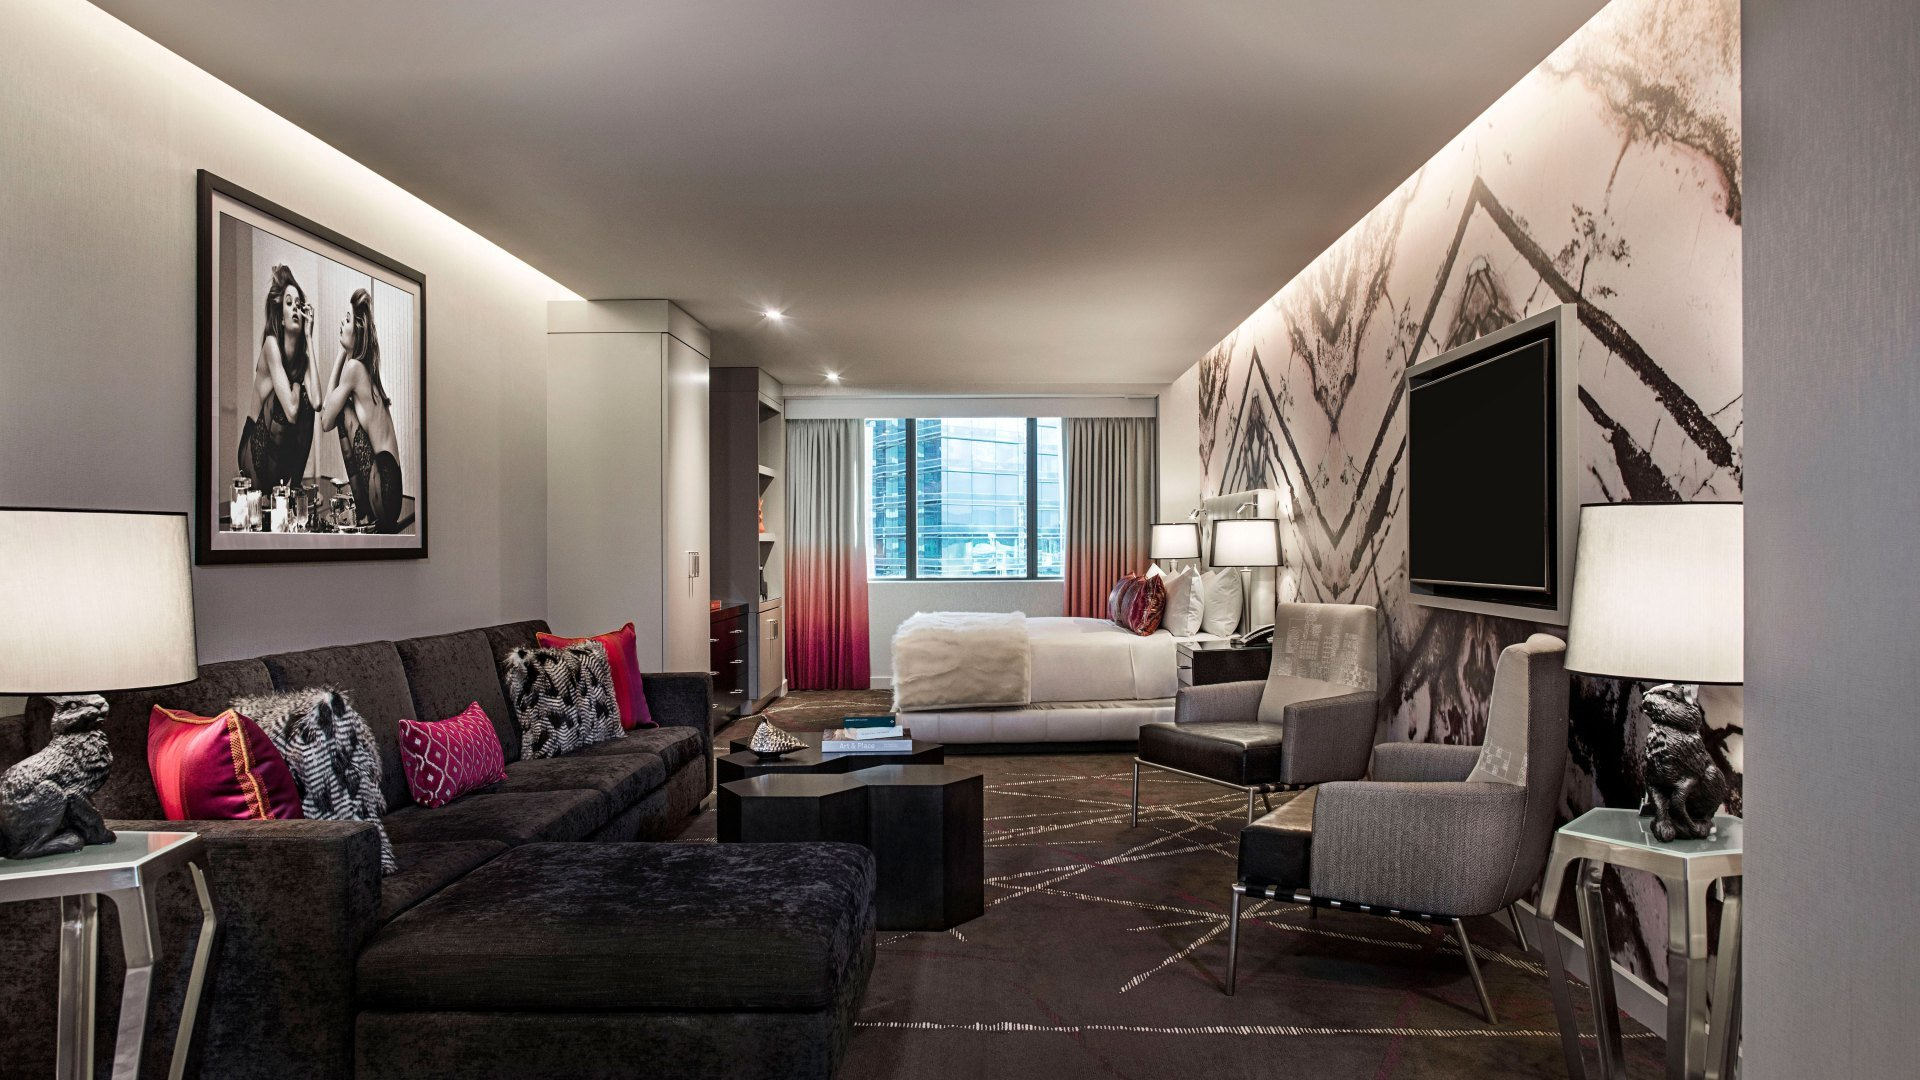 Best Las Vegas Luxury Hotel Rooms And Suites The Cosmopolitan With Pictures